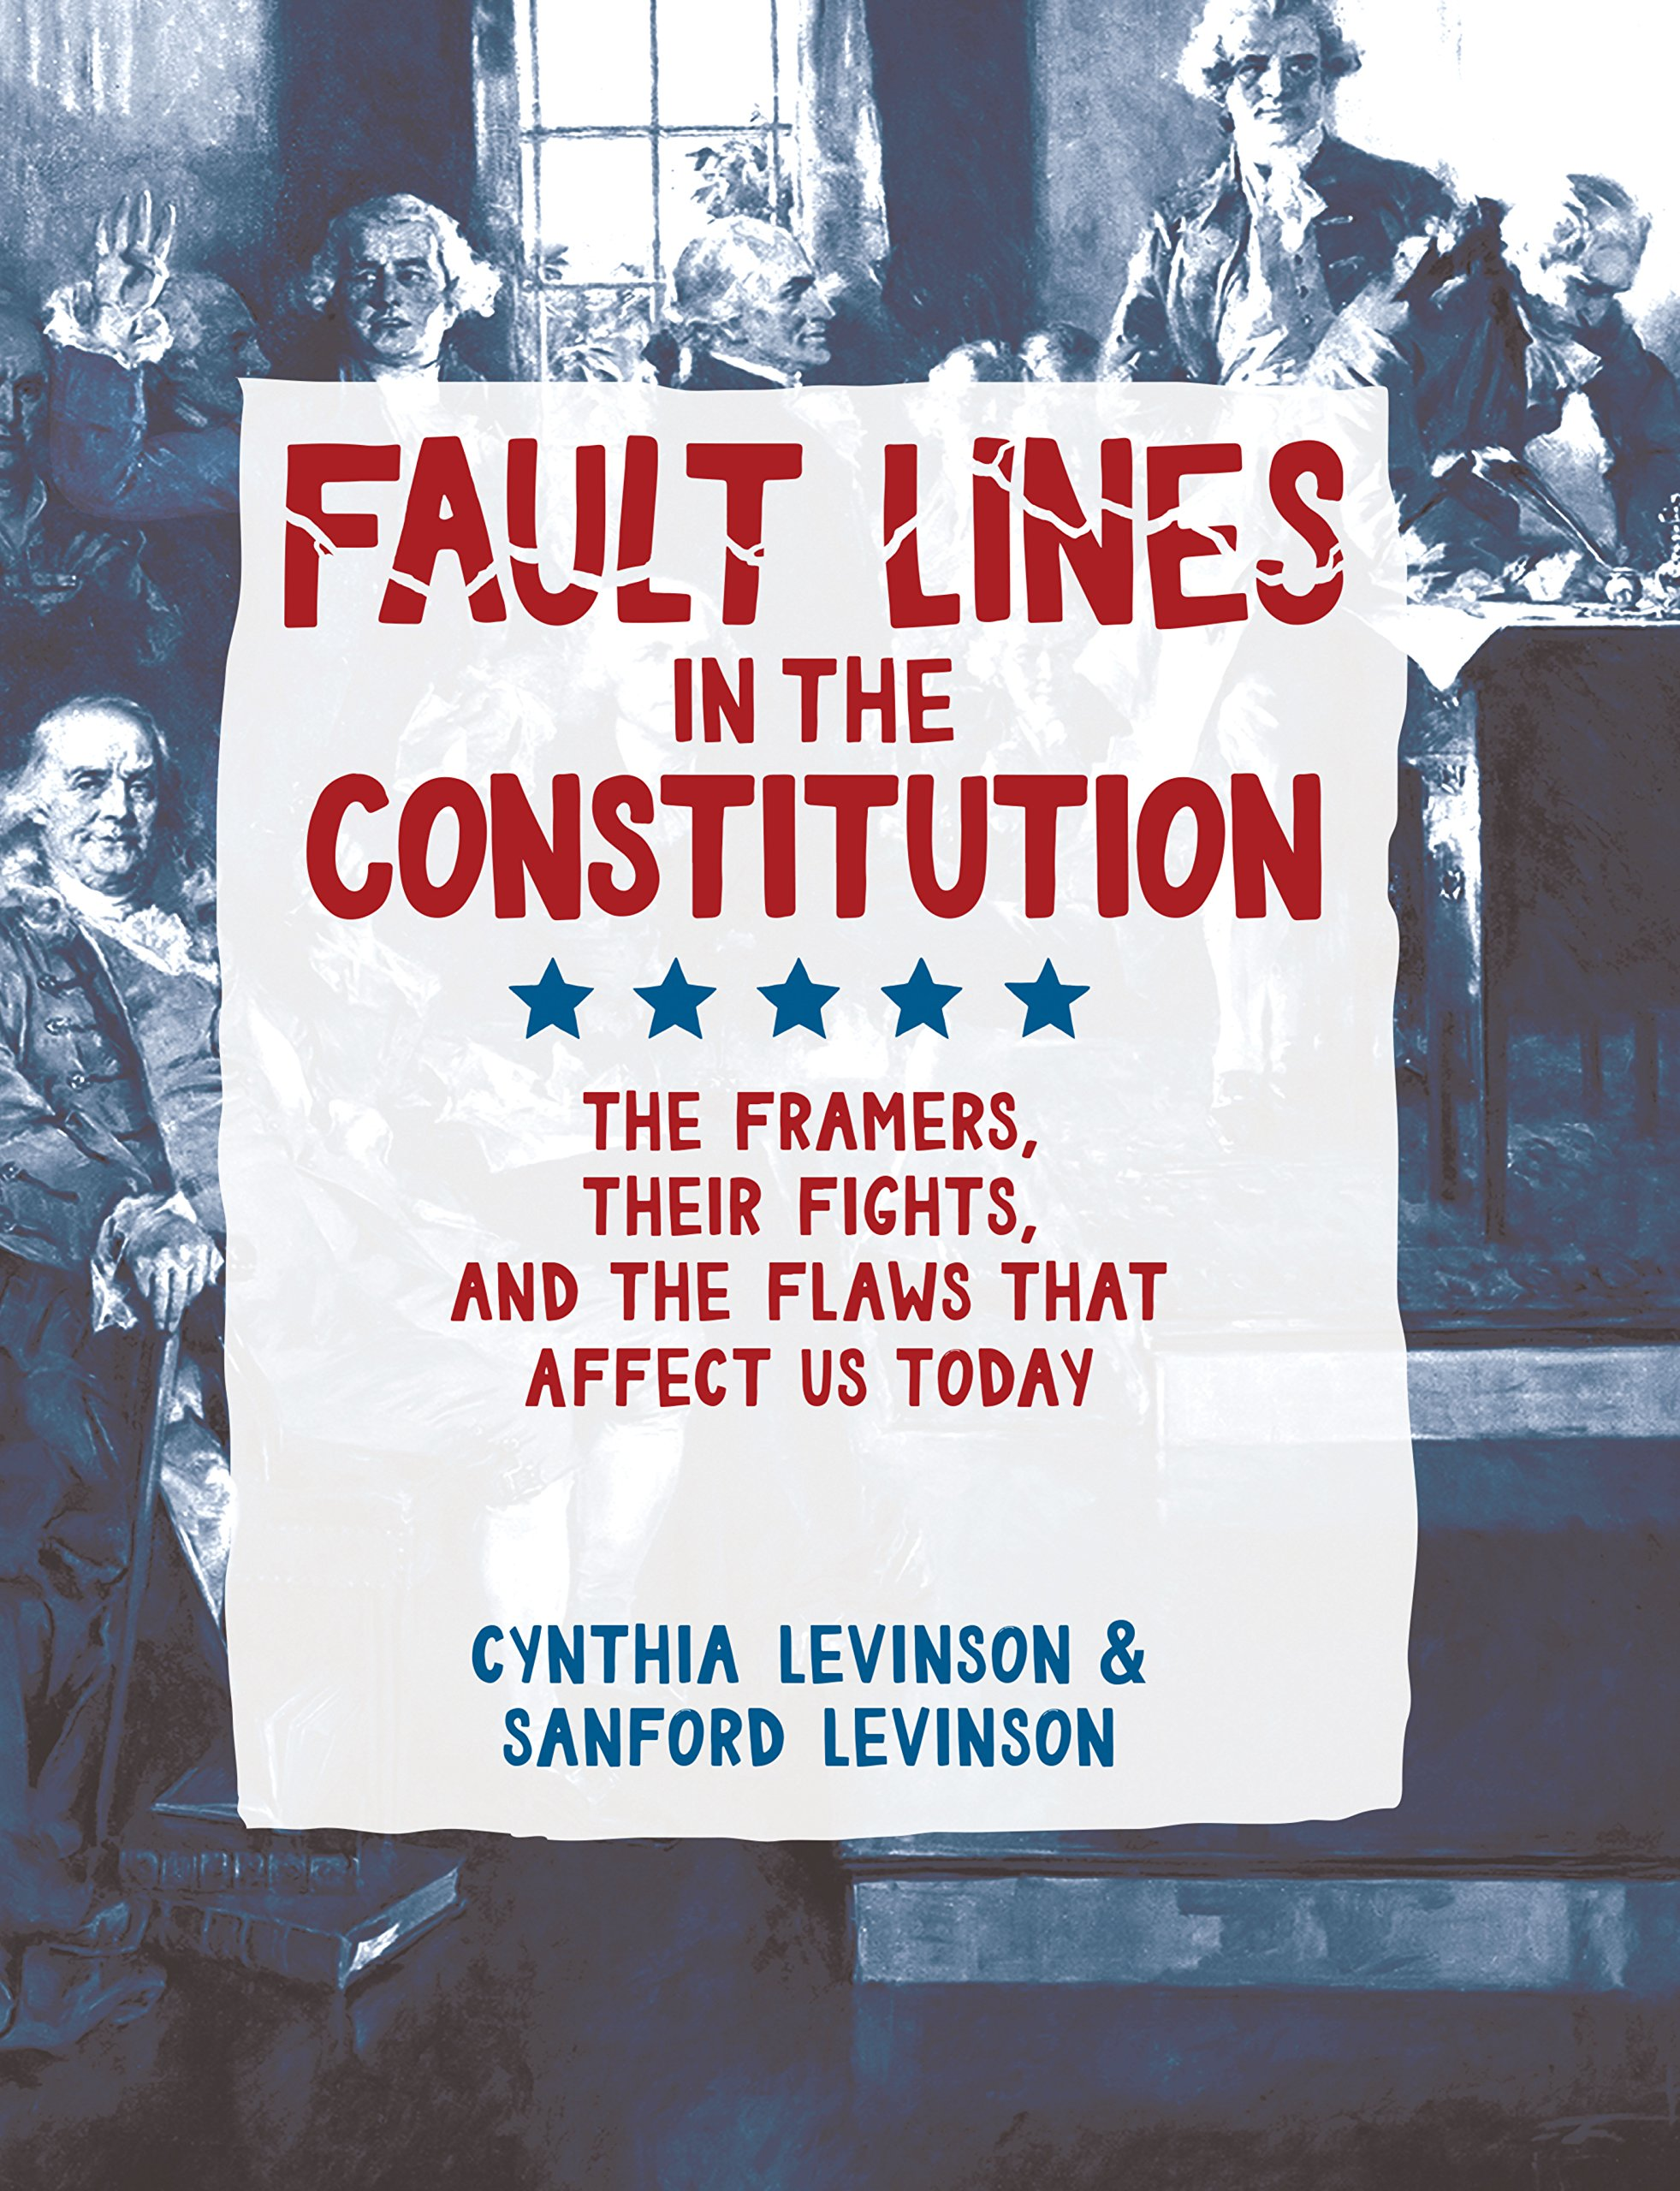 Fault Lines in the Constitution: The Framers, Their Fights, and the Flaws that Affect Us Today: Levinson, Cynthia; Levinson, Sanford: 9781561459452: Amazon.com: Books